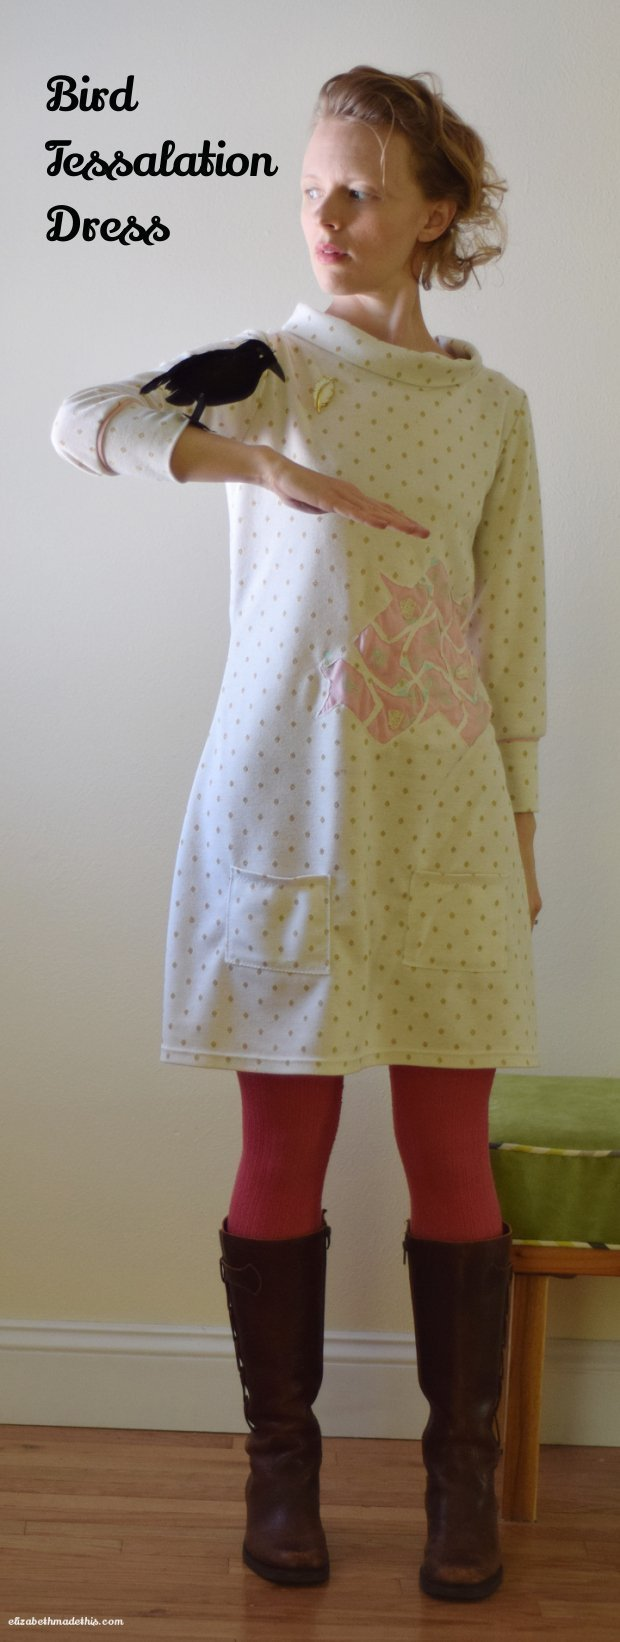 Bird tessalation dress: Elizabeth Made This